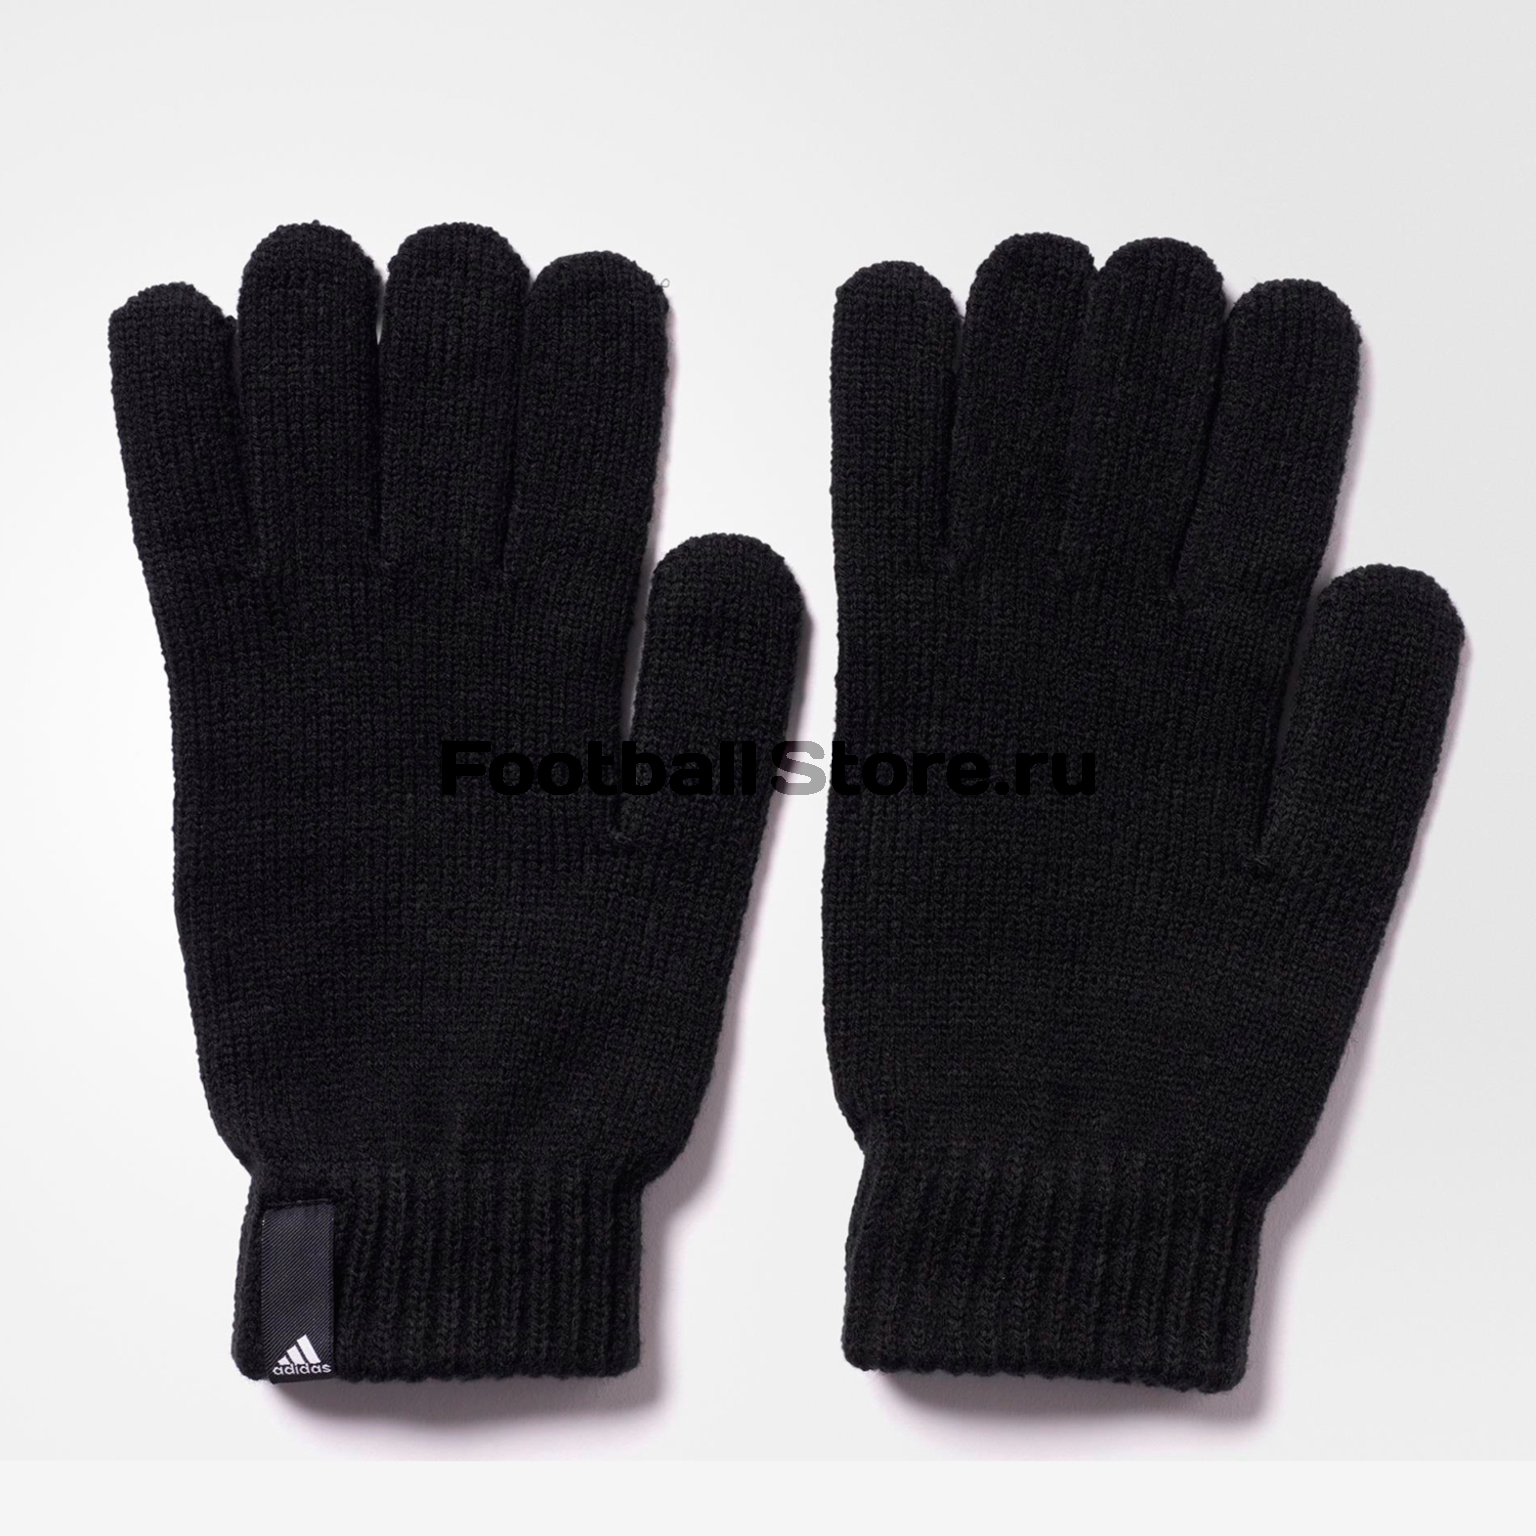 Перчатки Adidas Perf Gloves AB0345